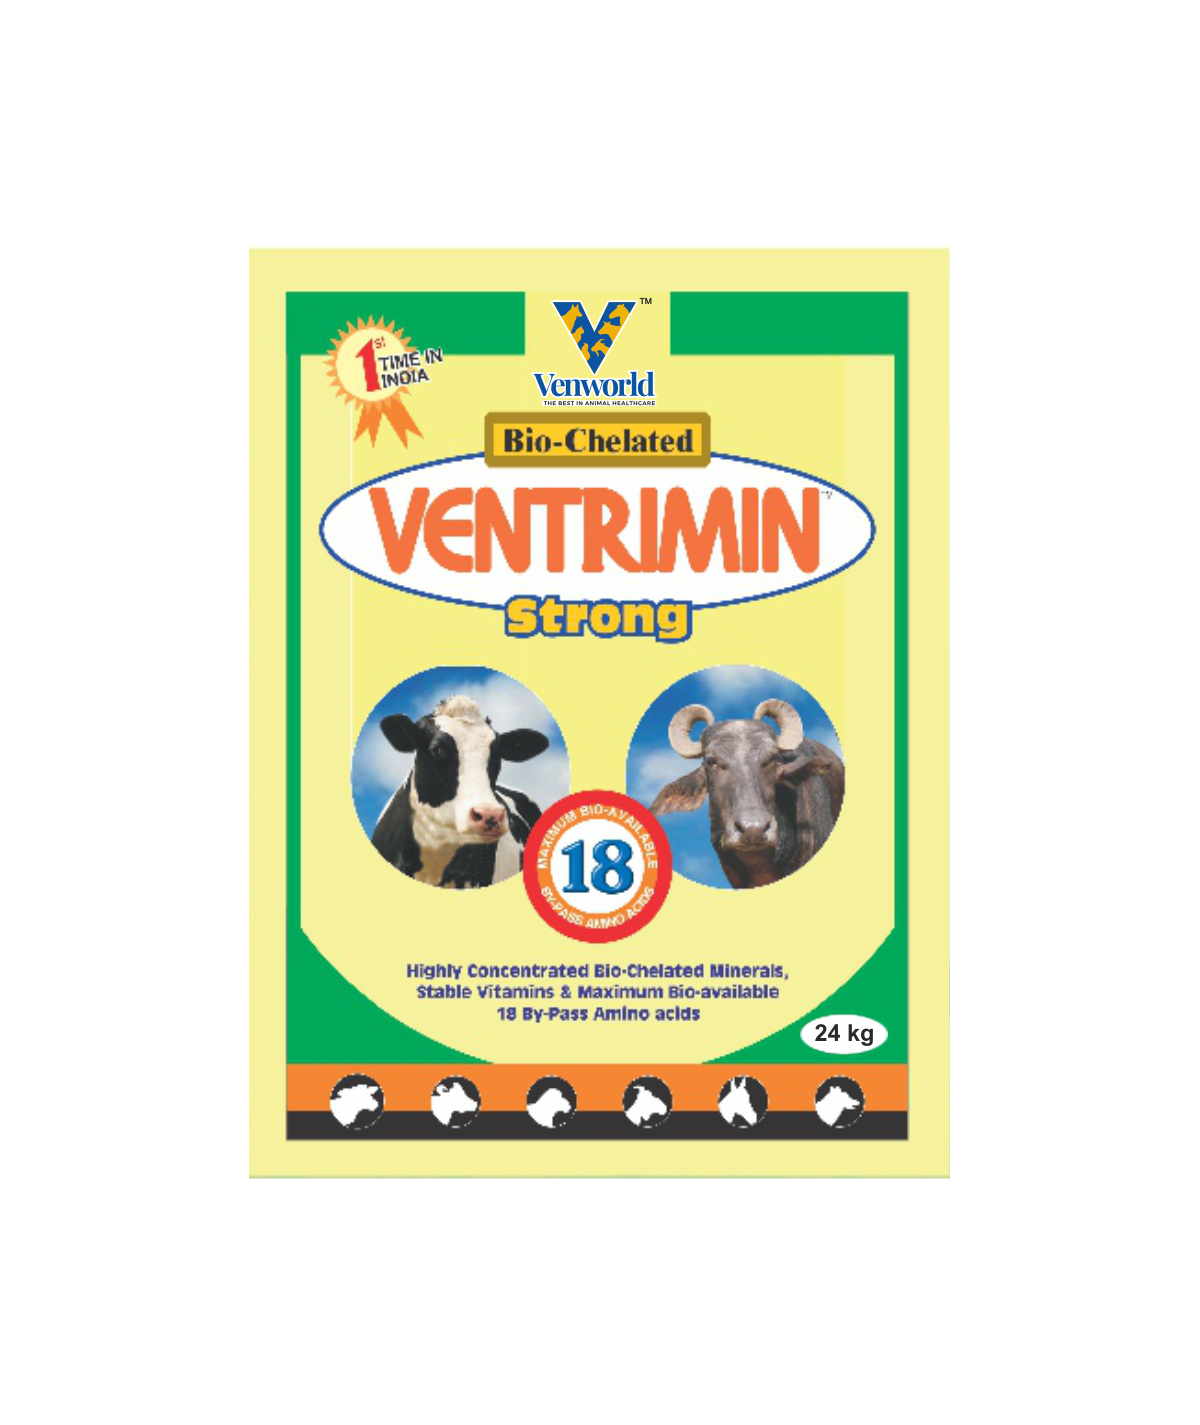 Bio-Chelated Ventrimin Strong